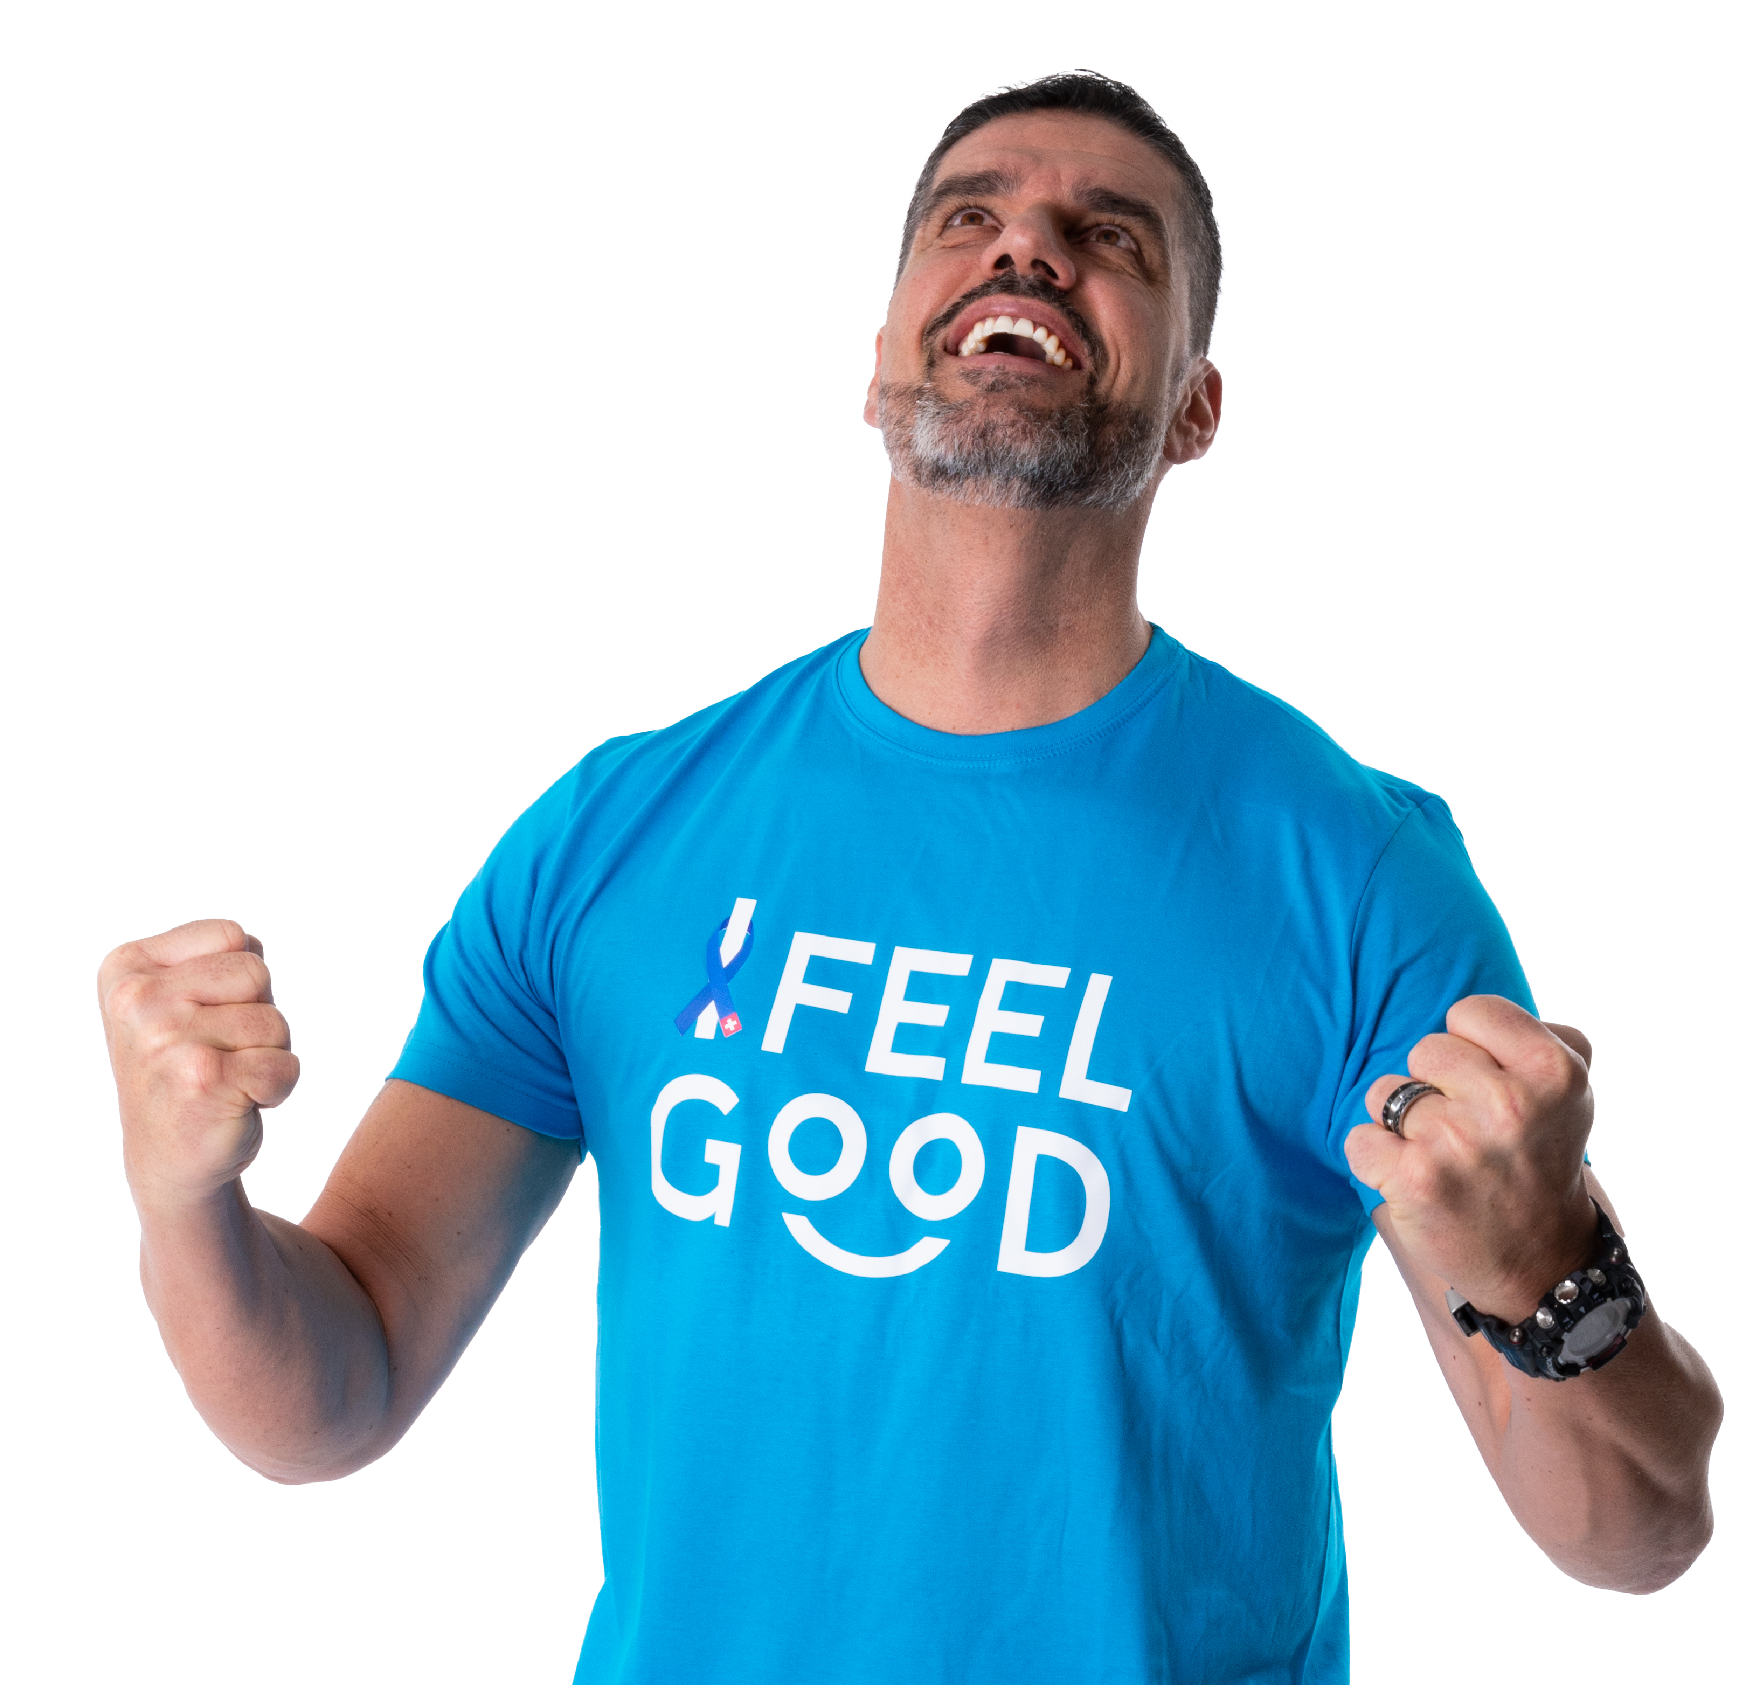 I FEEL GOOD Kampagne zur Darmkrebsprävention